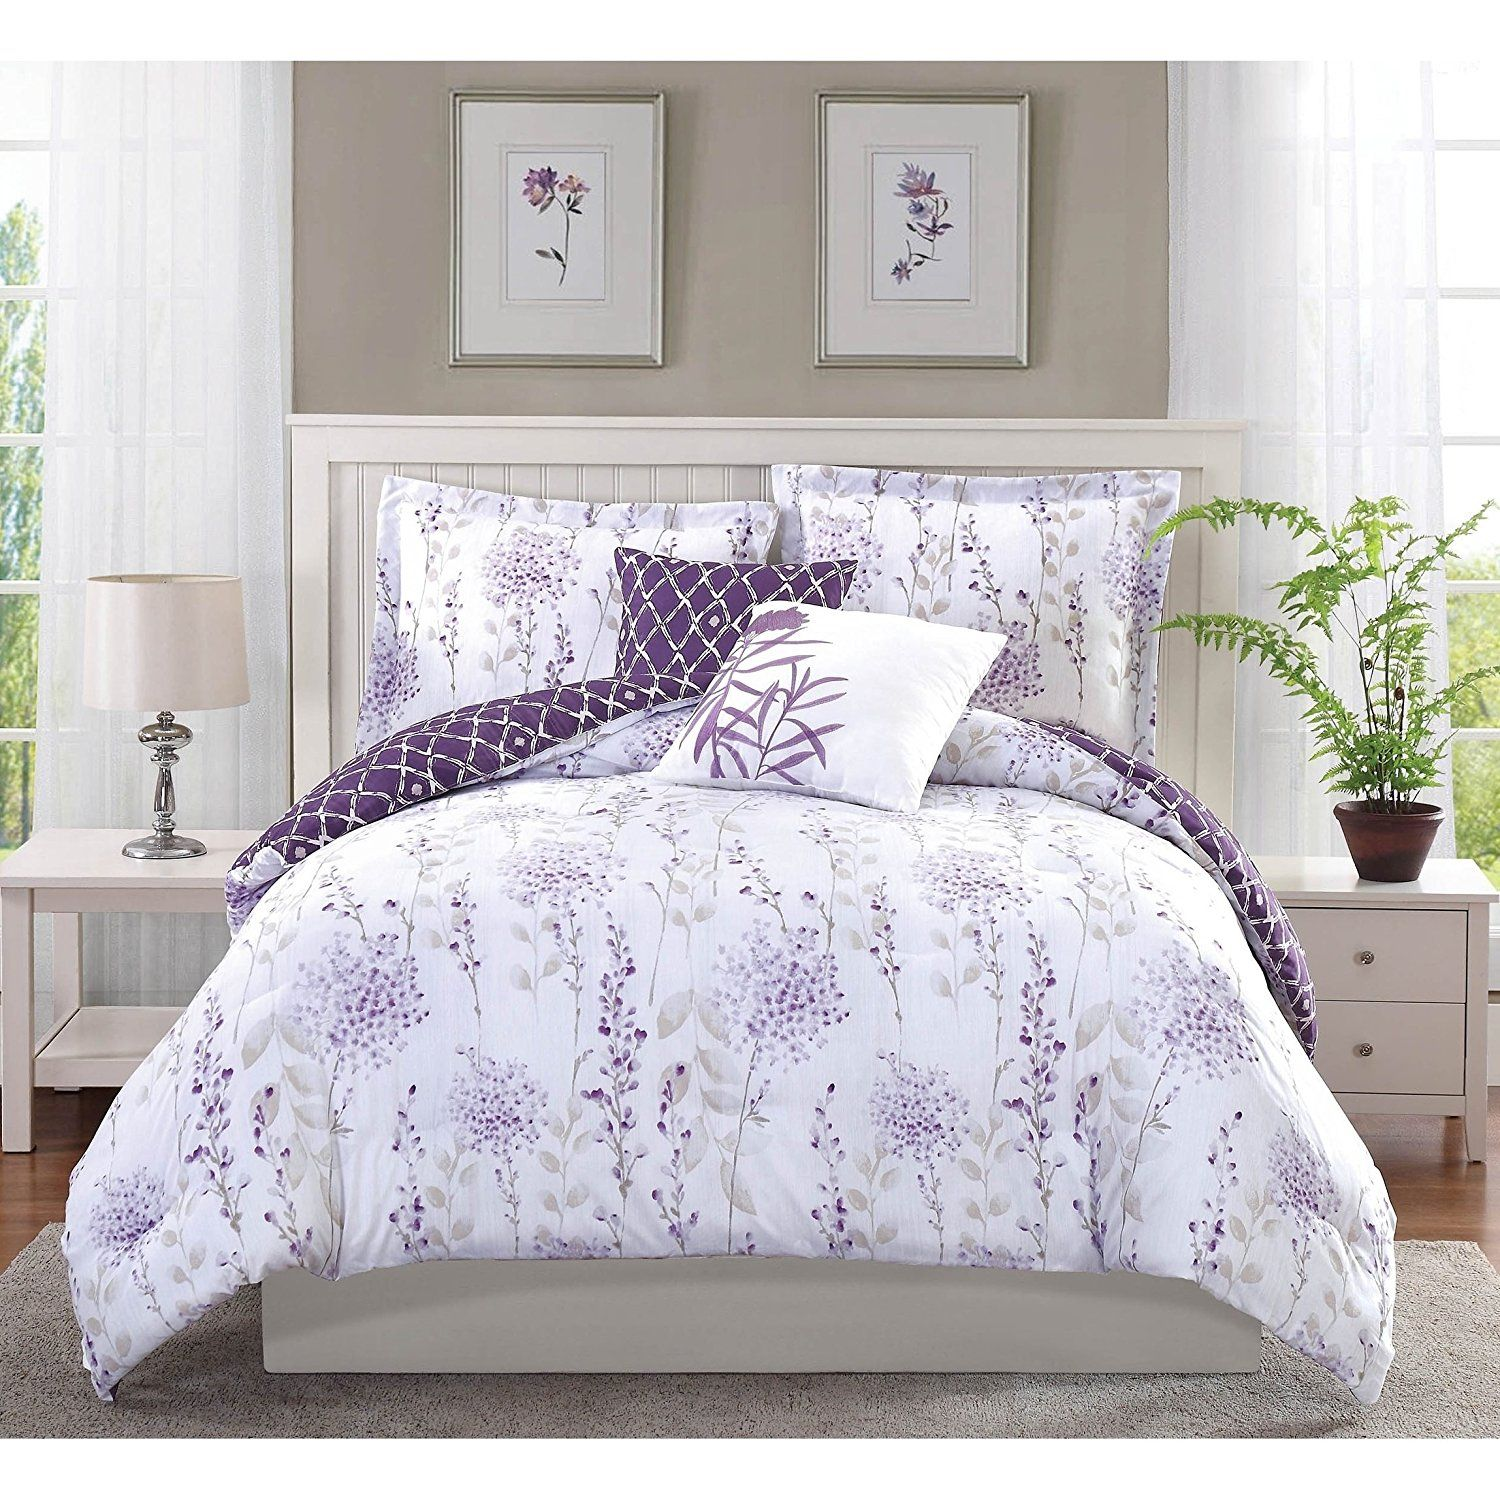 5 piece girls purple white lavender floral theme comforter full queen set beautiful. Black Bedroom Furniture Sets. Home Design Ideas